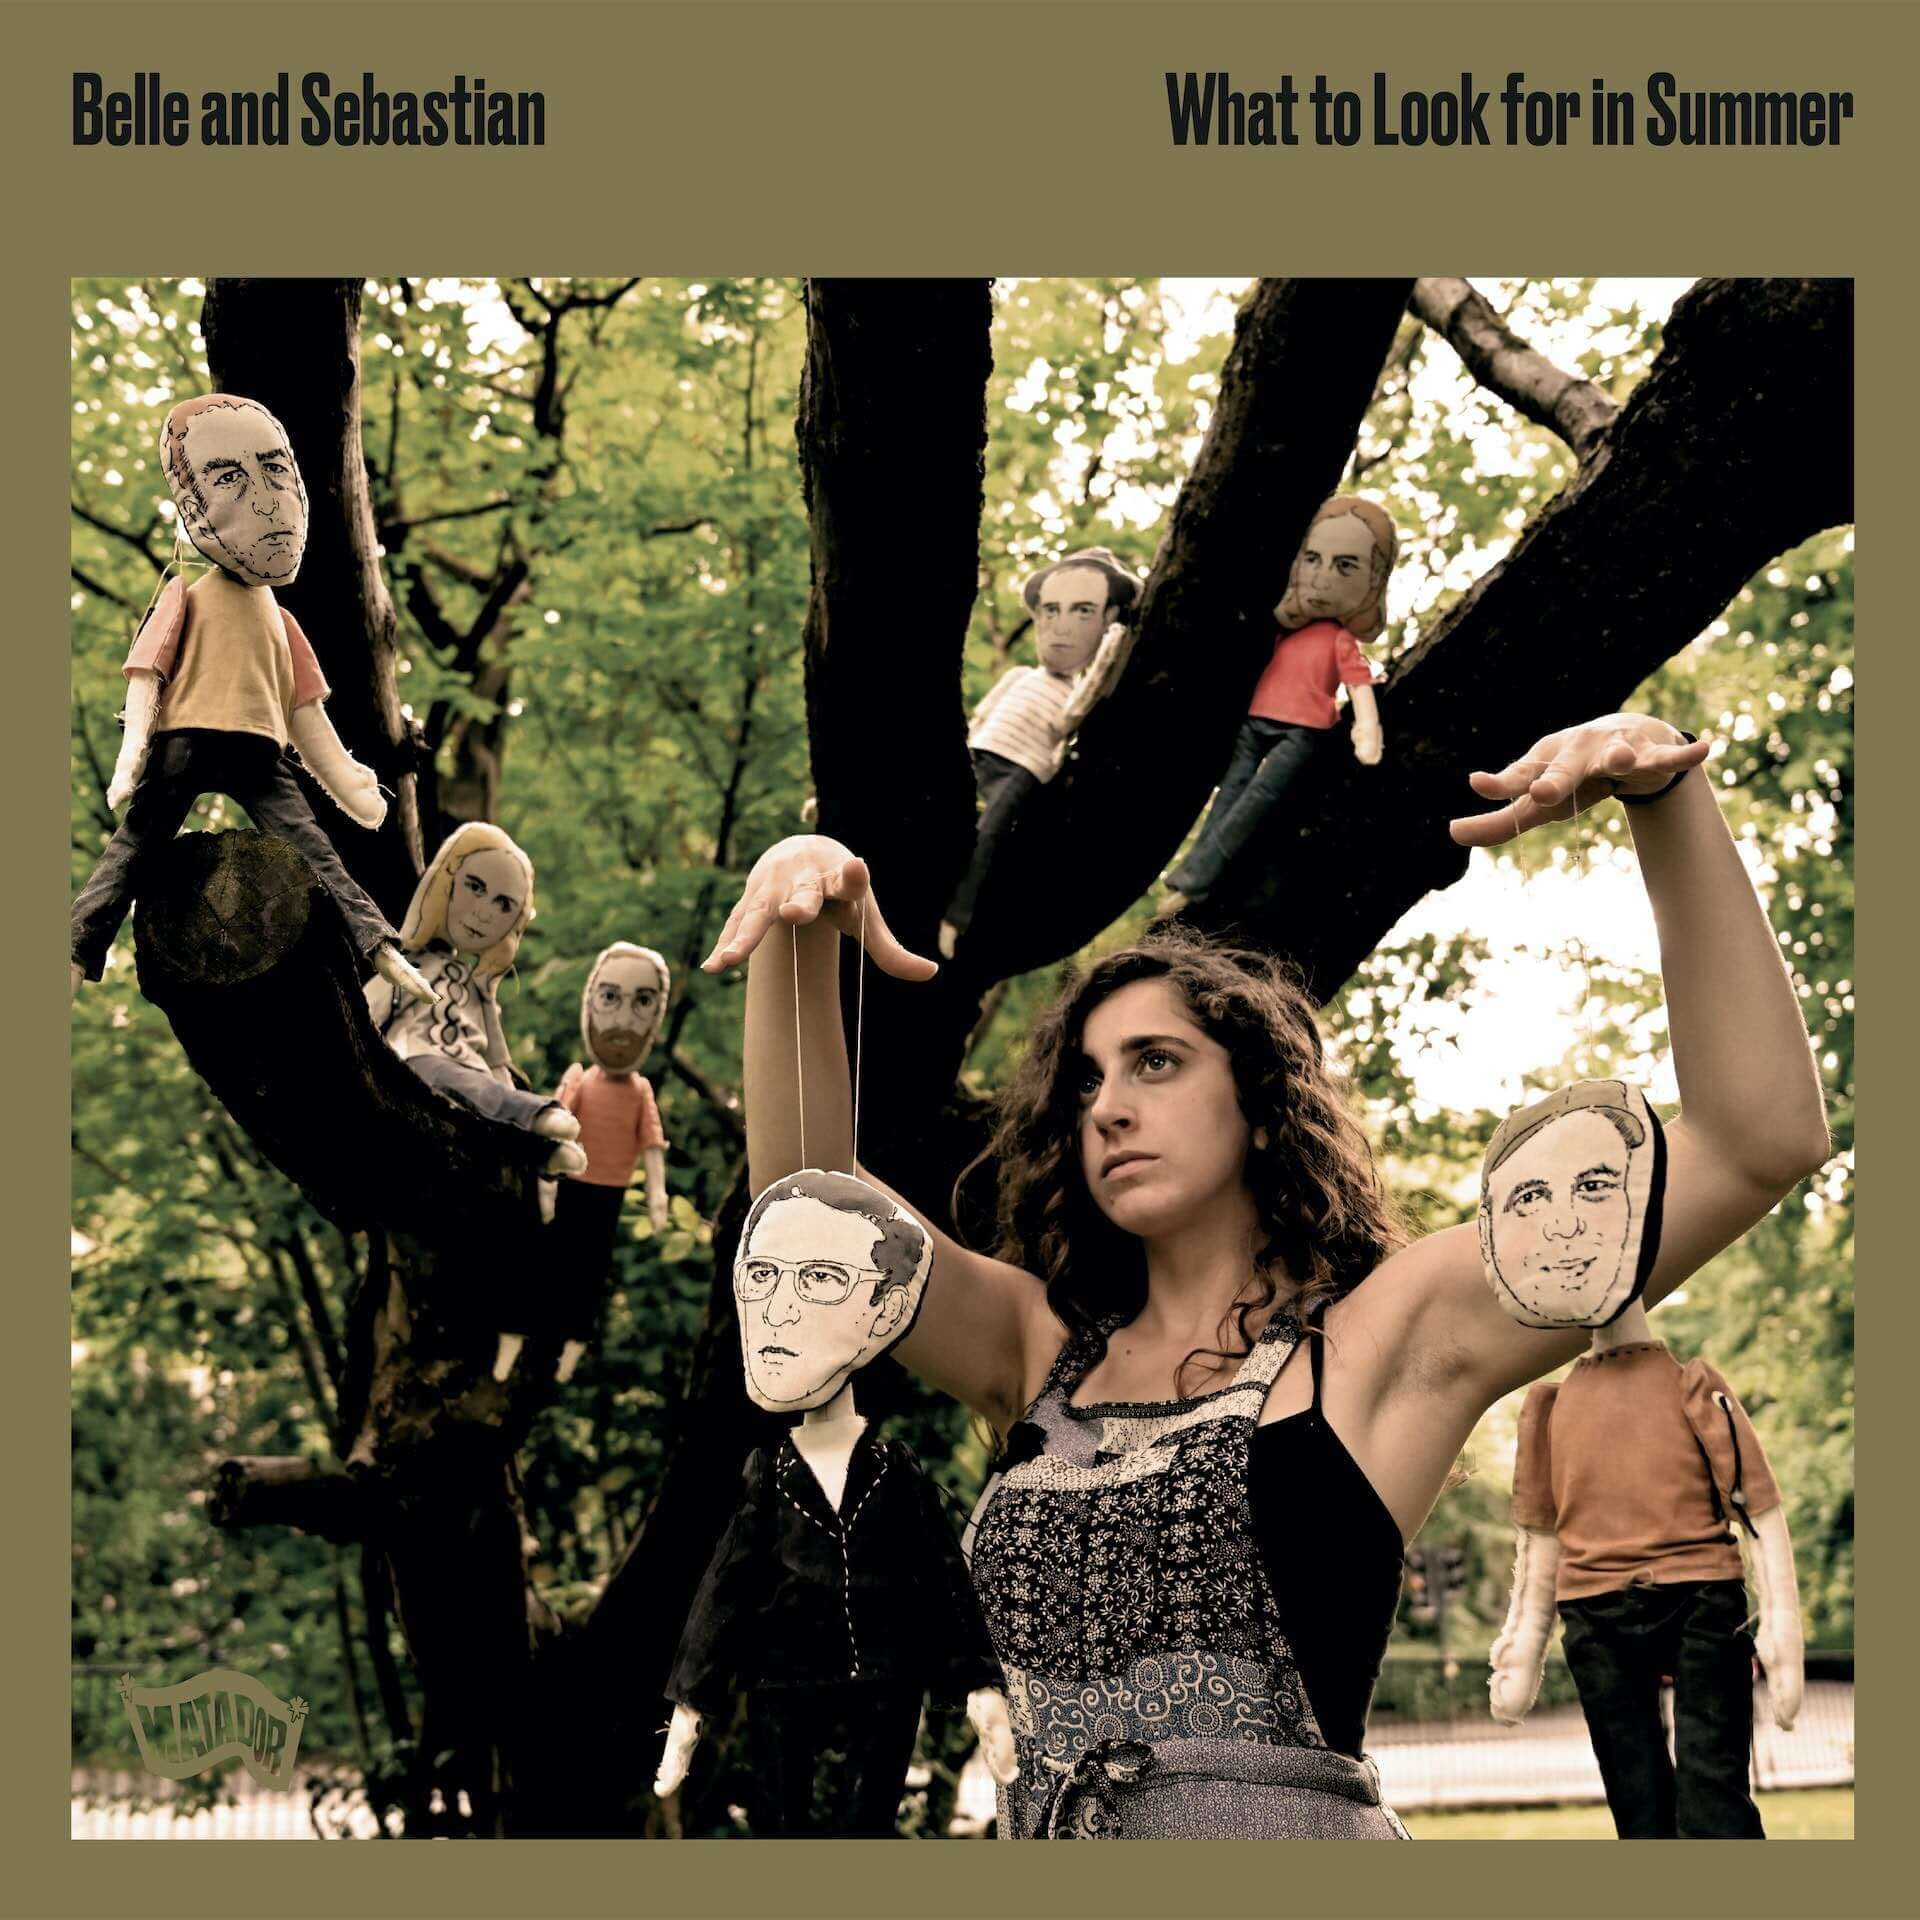 """Belle and Sebastianのライブ・ベスト盤『What To Look For In Summer』より""""The Fox In The Snow (Live)""""が解禁!プレゼント企画も実施決定 music201203_belle-and-sebastian_3-1920x1920"""